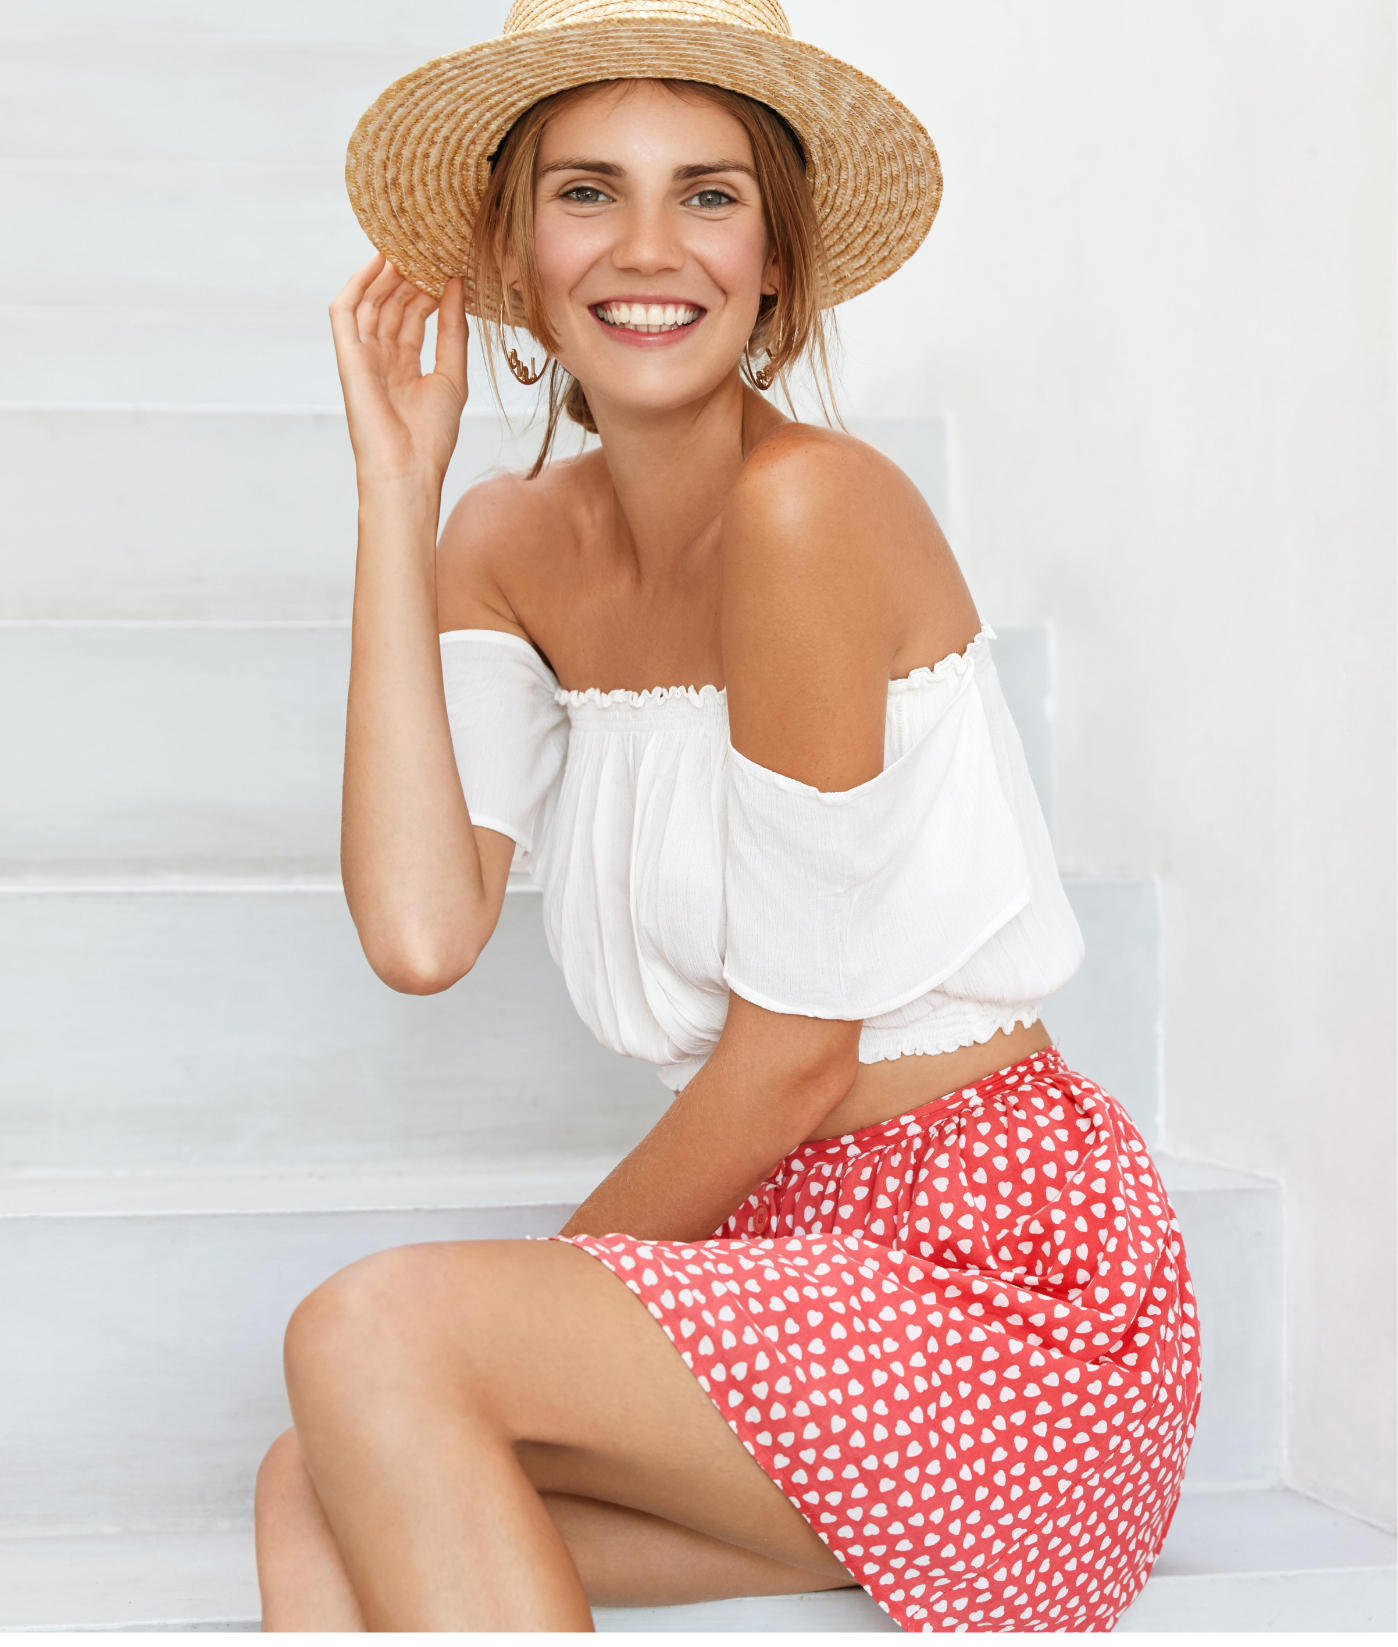 Woman wearing a white top and polka dot skirt